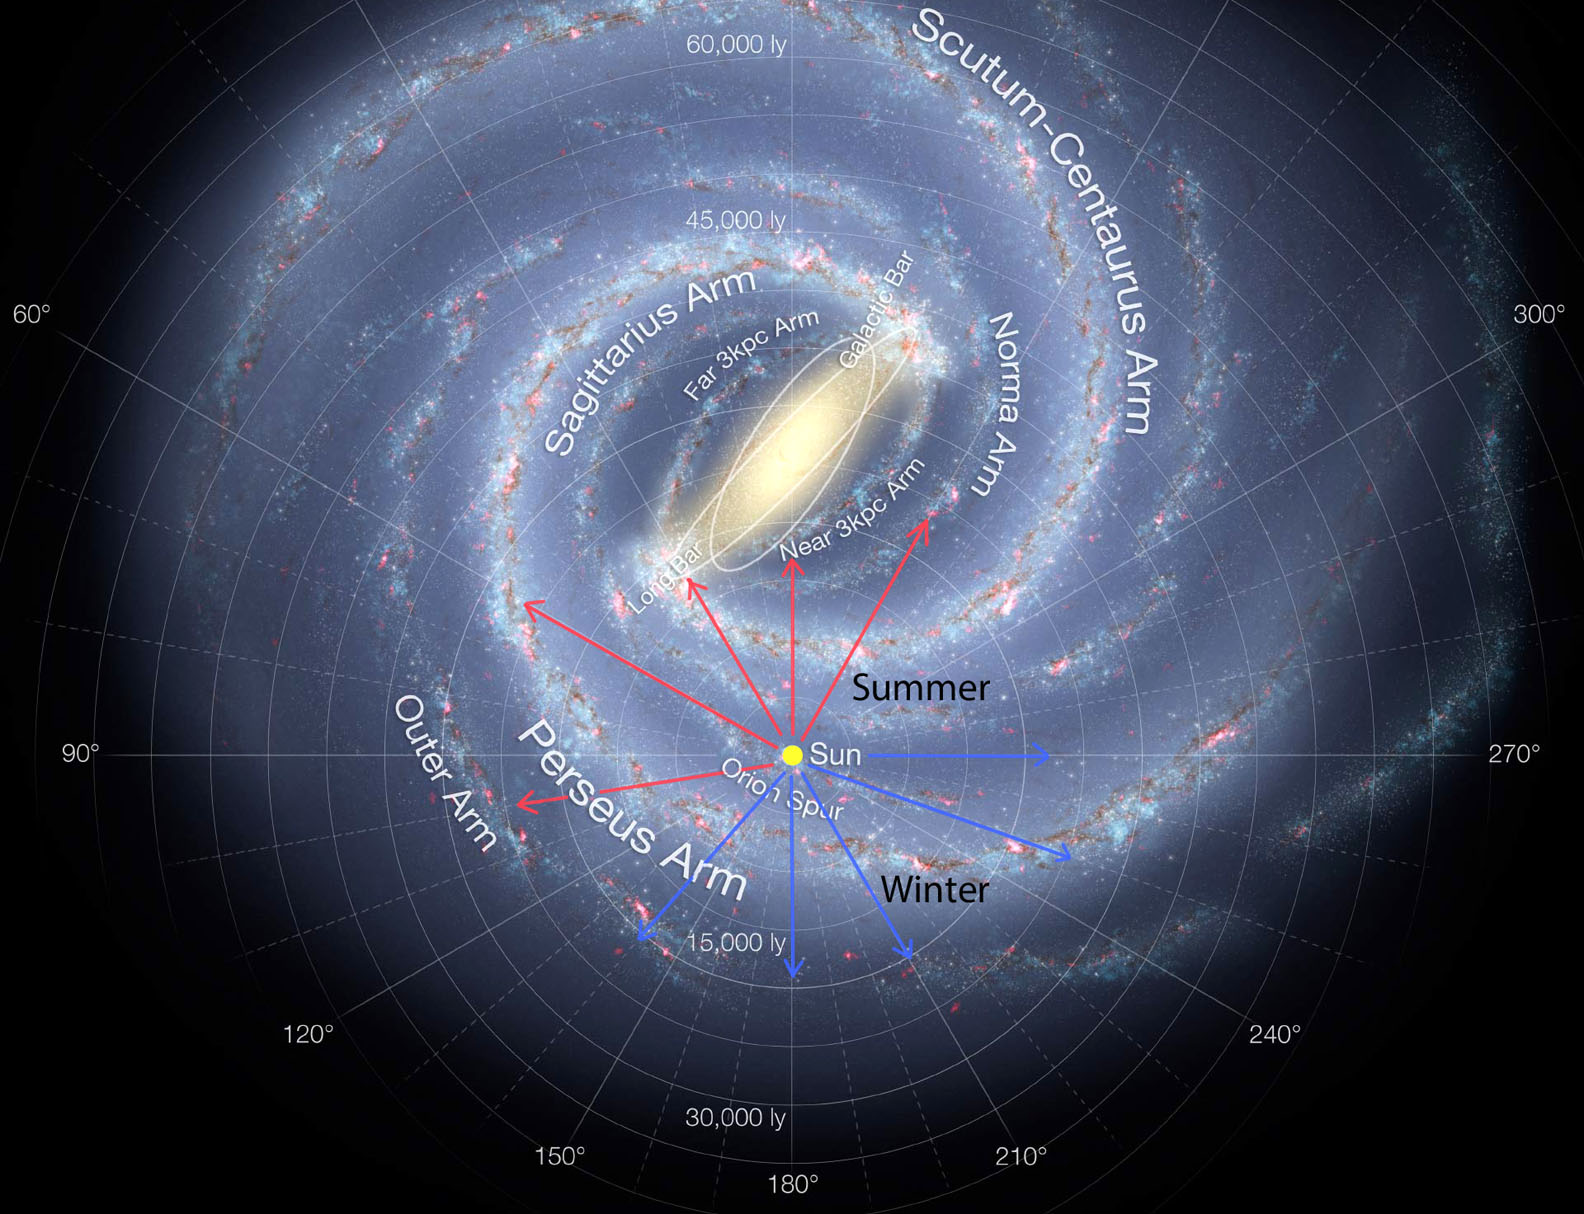 This detailed annotated artistÕs impression shows the structure of the Milky Way, including the location of the spiral arms and other components such as the bulge. This version of the image has been updated to include the most recent mapping of the shape of the central bulge deduced from survey data from ESOÕs VISTA telescope at the Paranal Observatory.